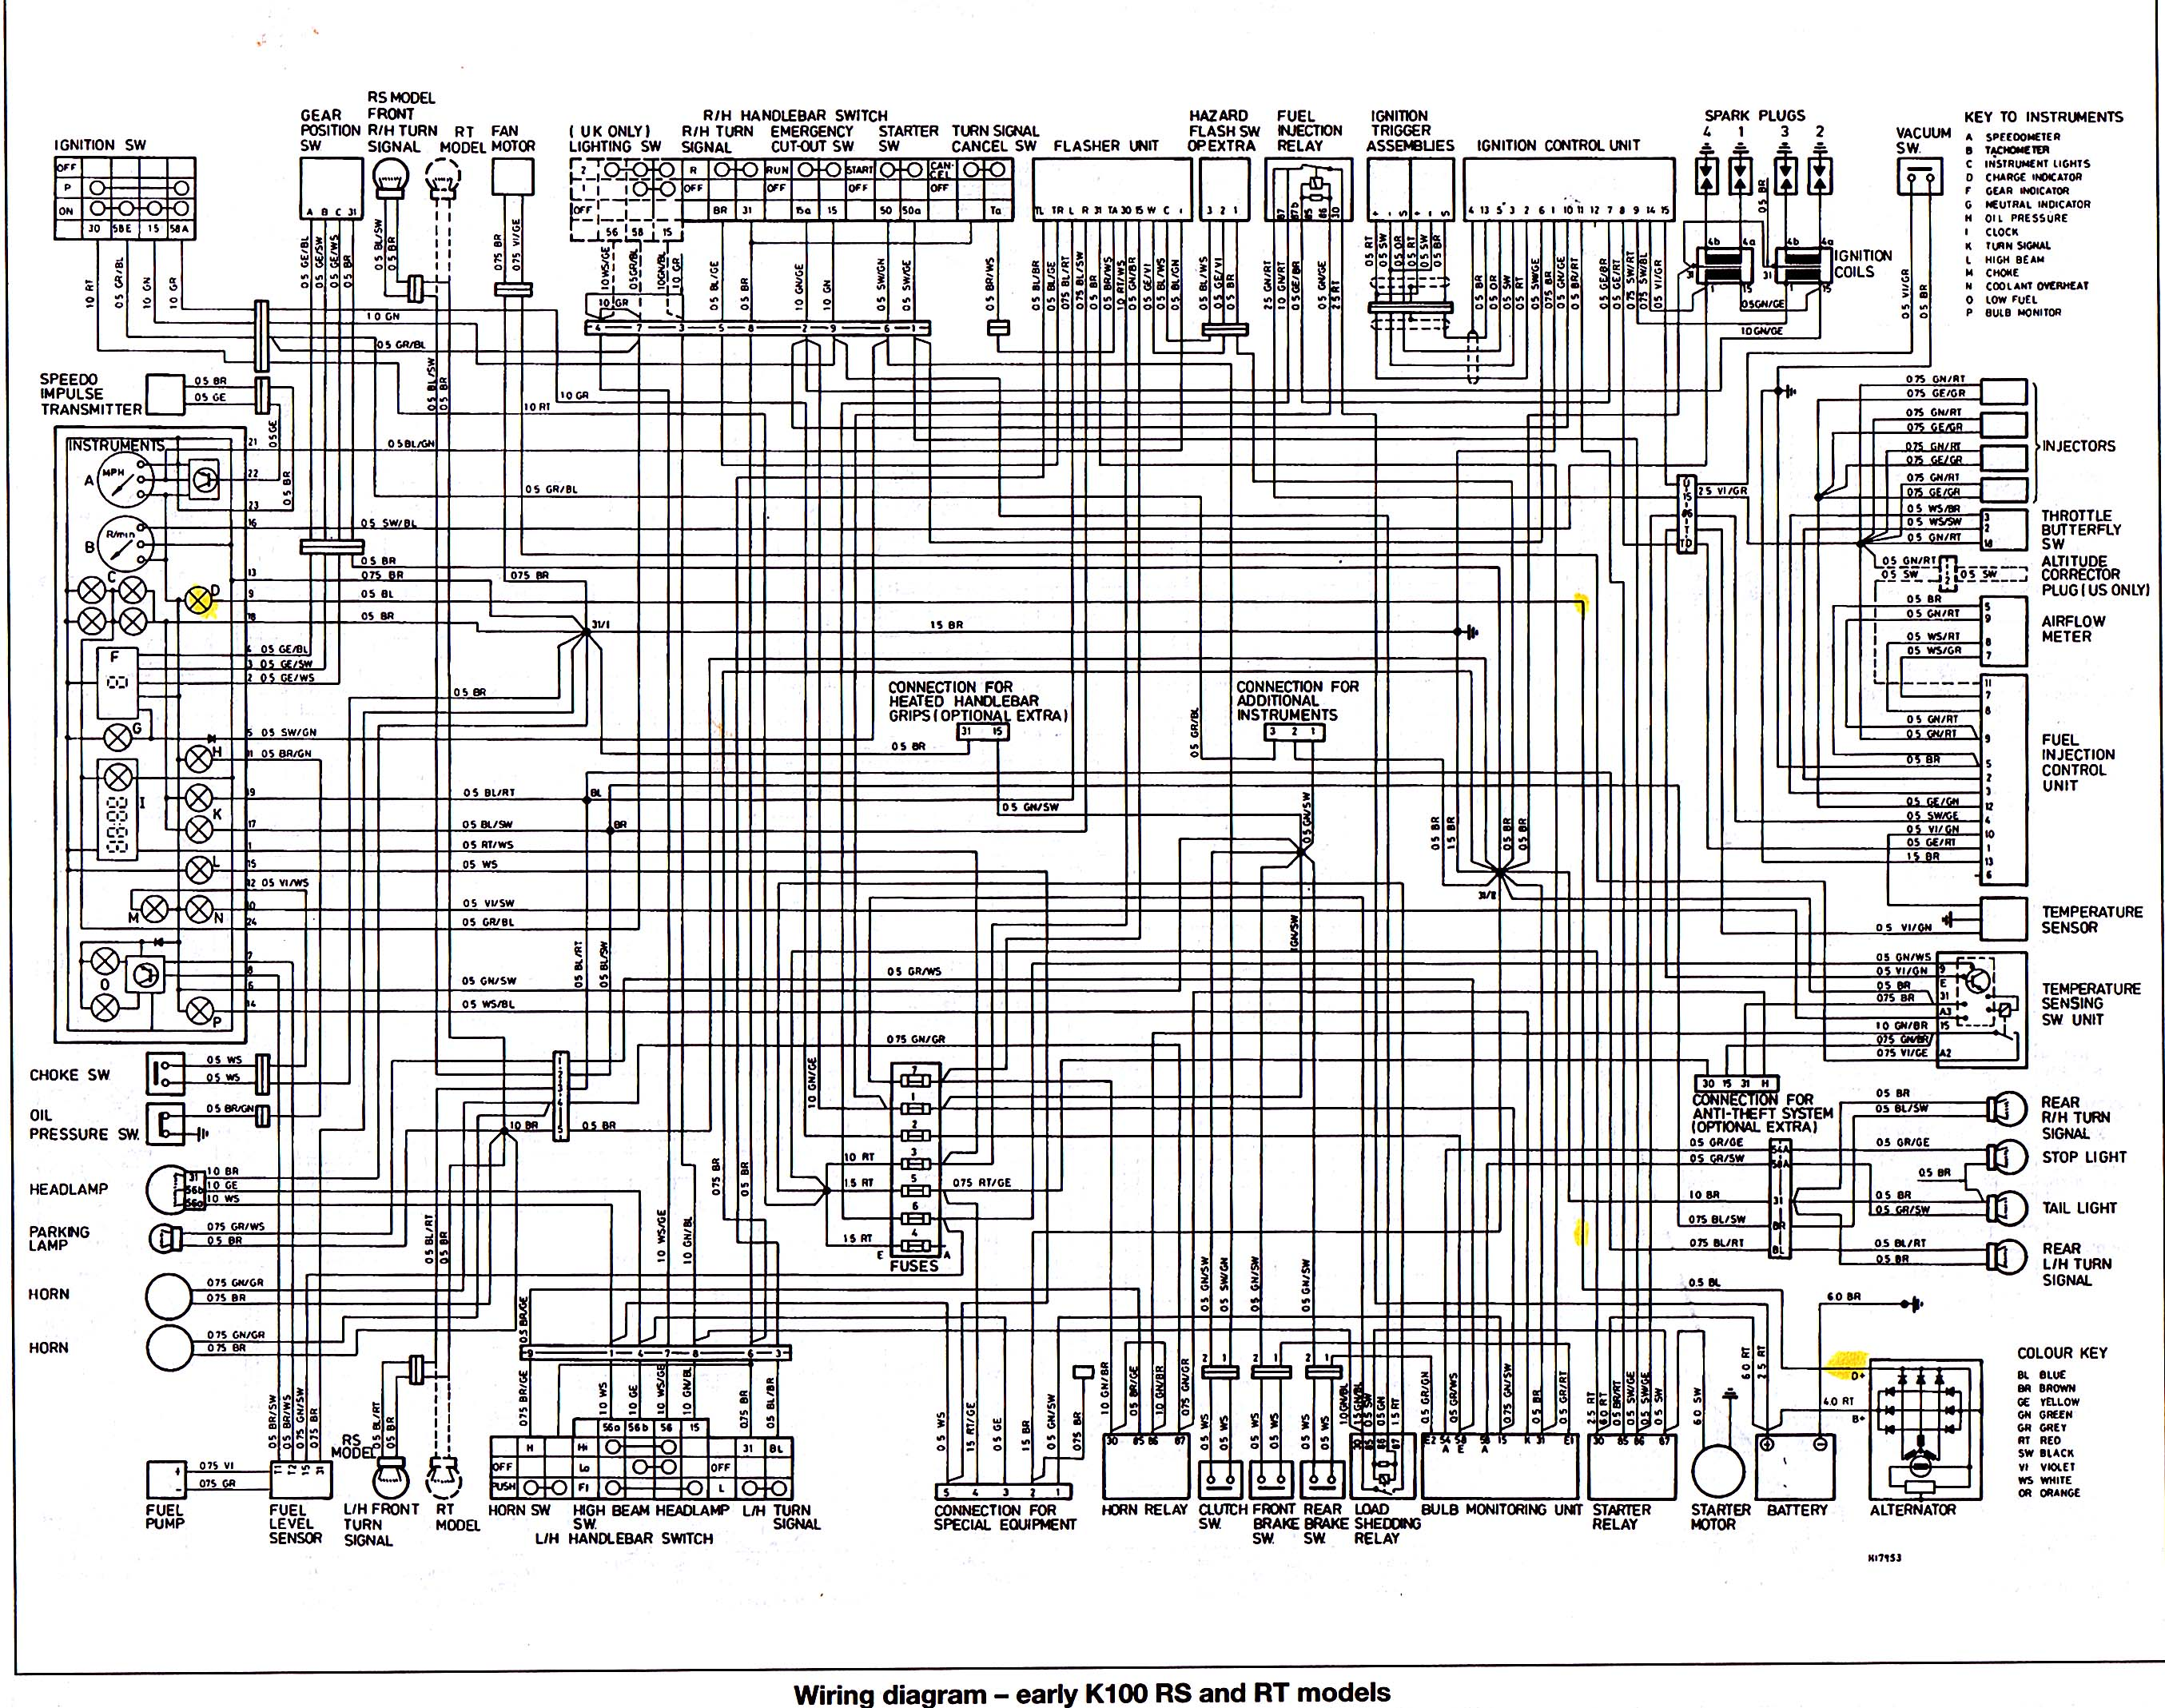 bmw k1 wiring diagram auto electrical wiring diagram u2022 rh 6weeks co uk